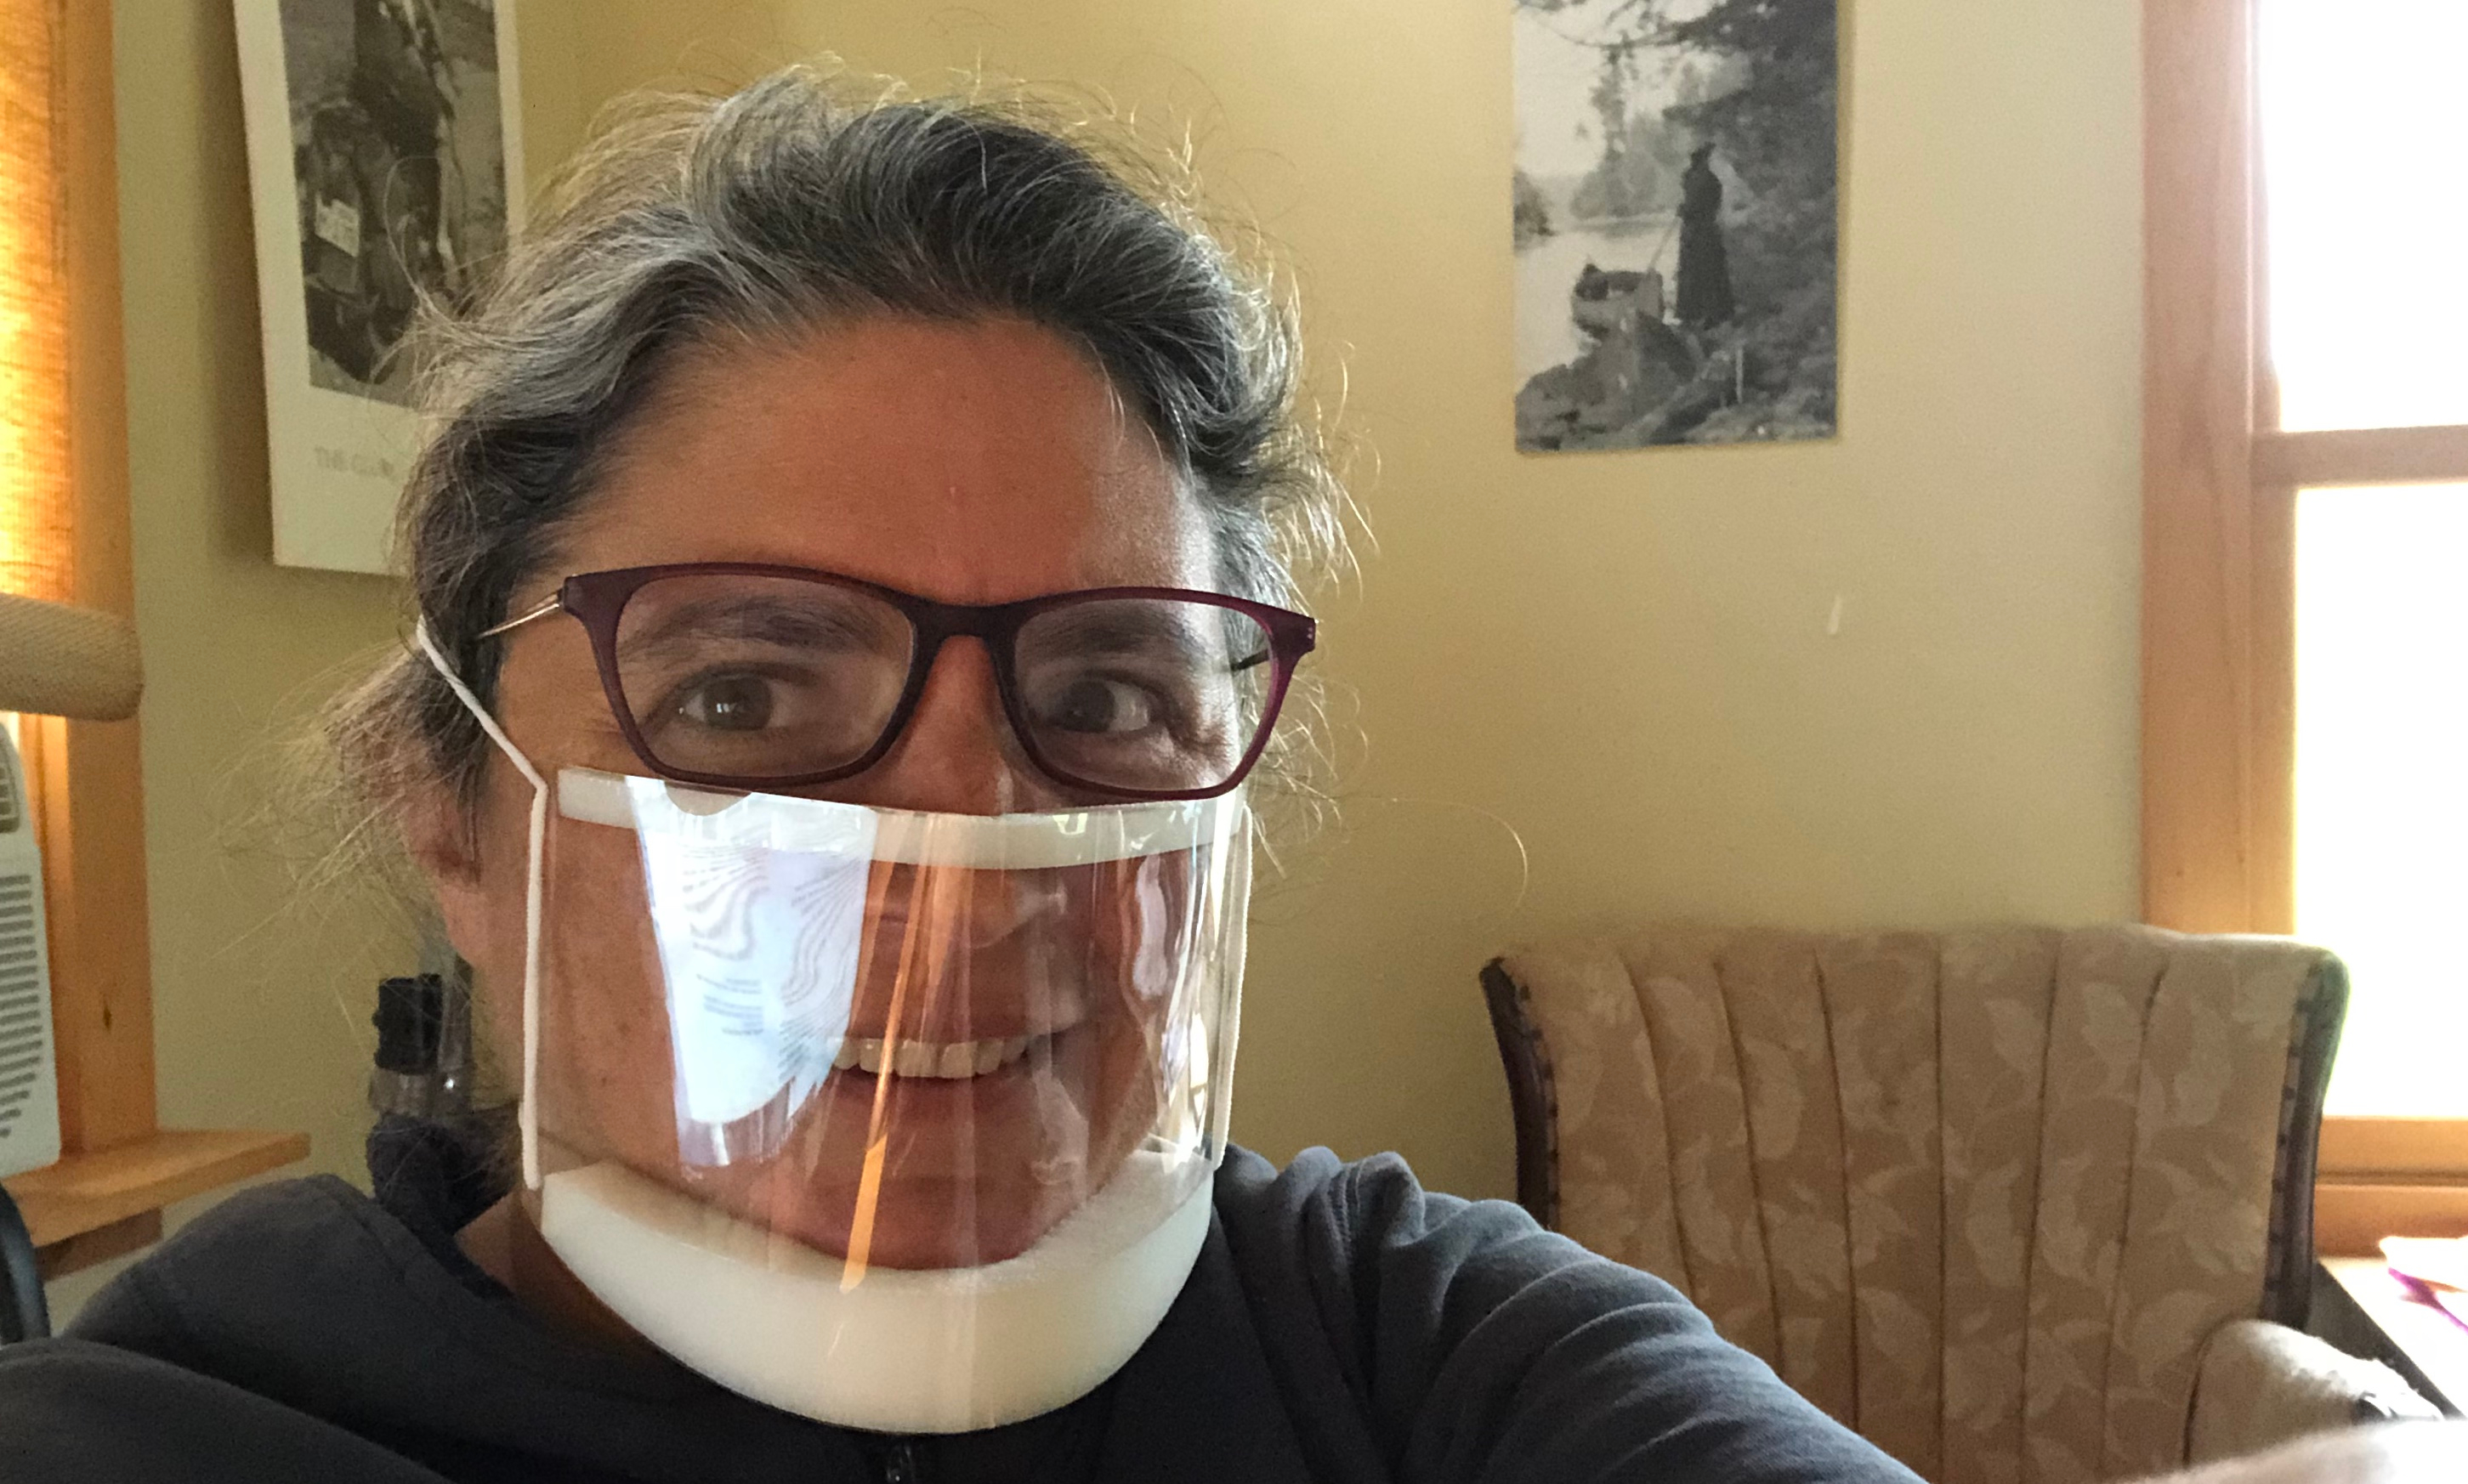 The author smiles wearing a clear mask that is pushing her glasses high on her face and showing considerable glare.